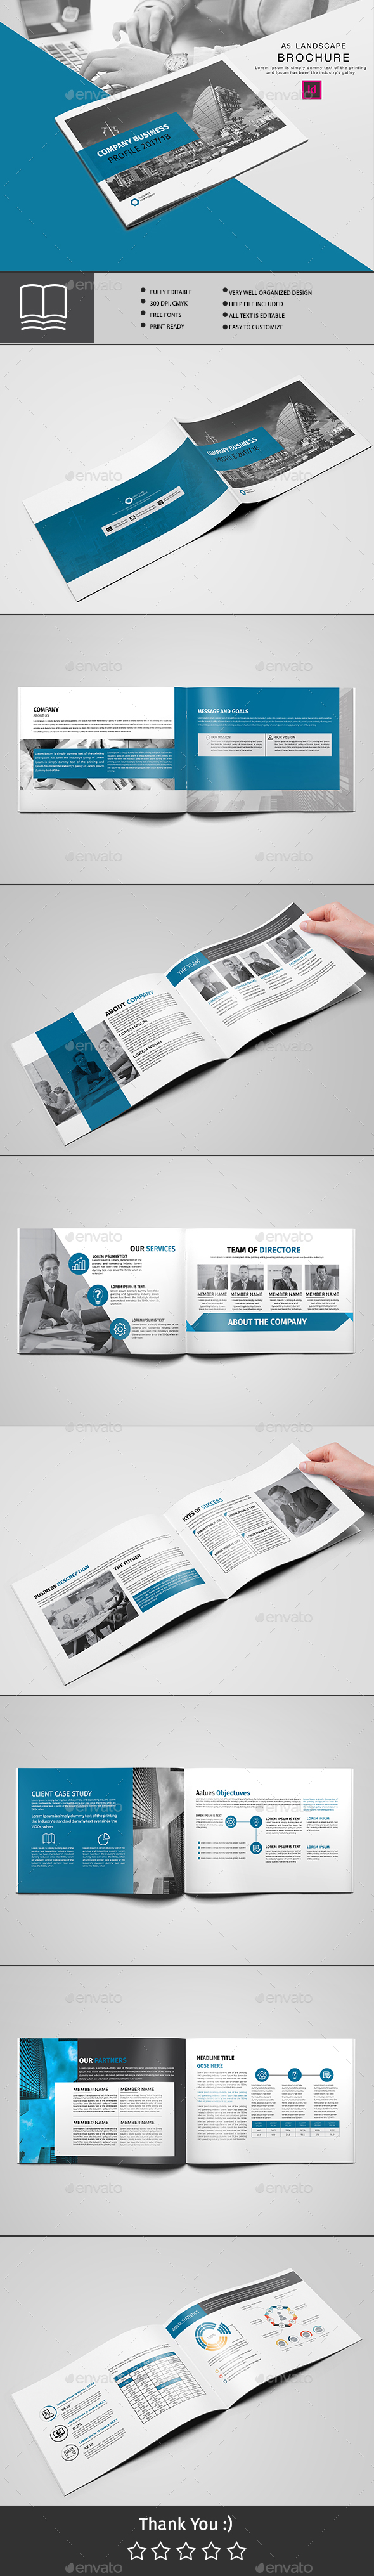 GraphicRiver Brochure 16 Page 20706499